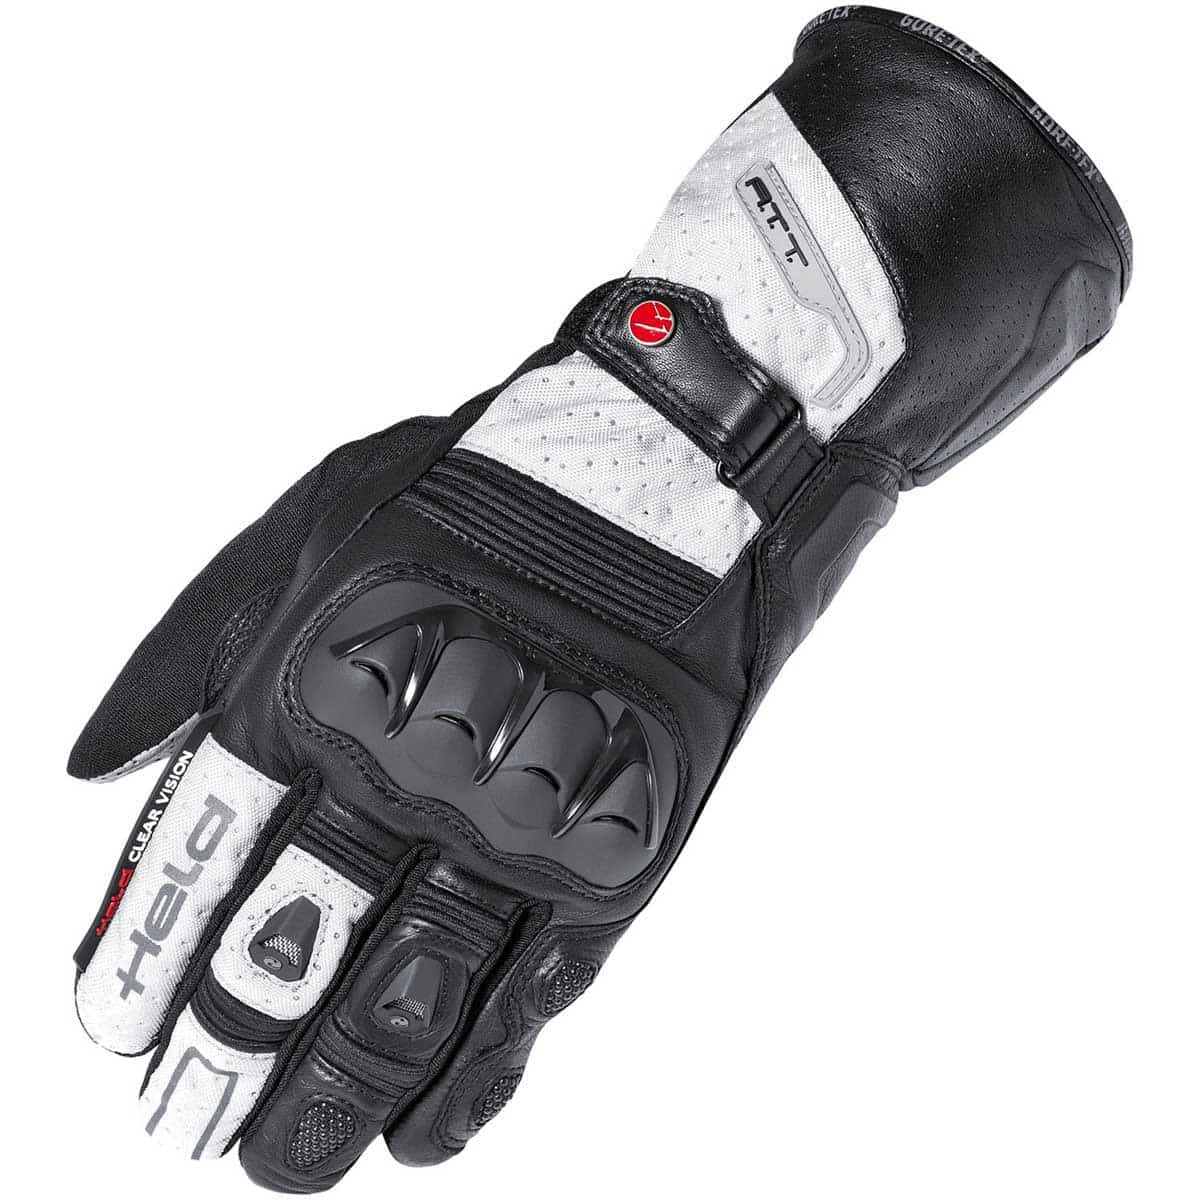 Held Air n Dry: Do you know the complete Held 2-in-1 gloves range?